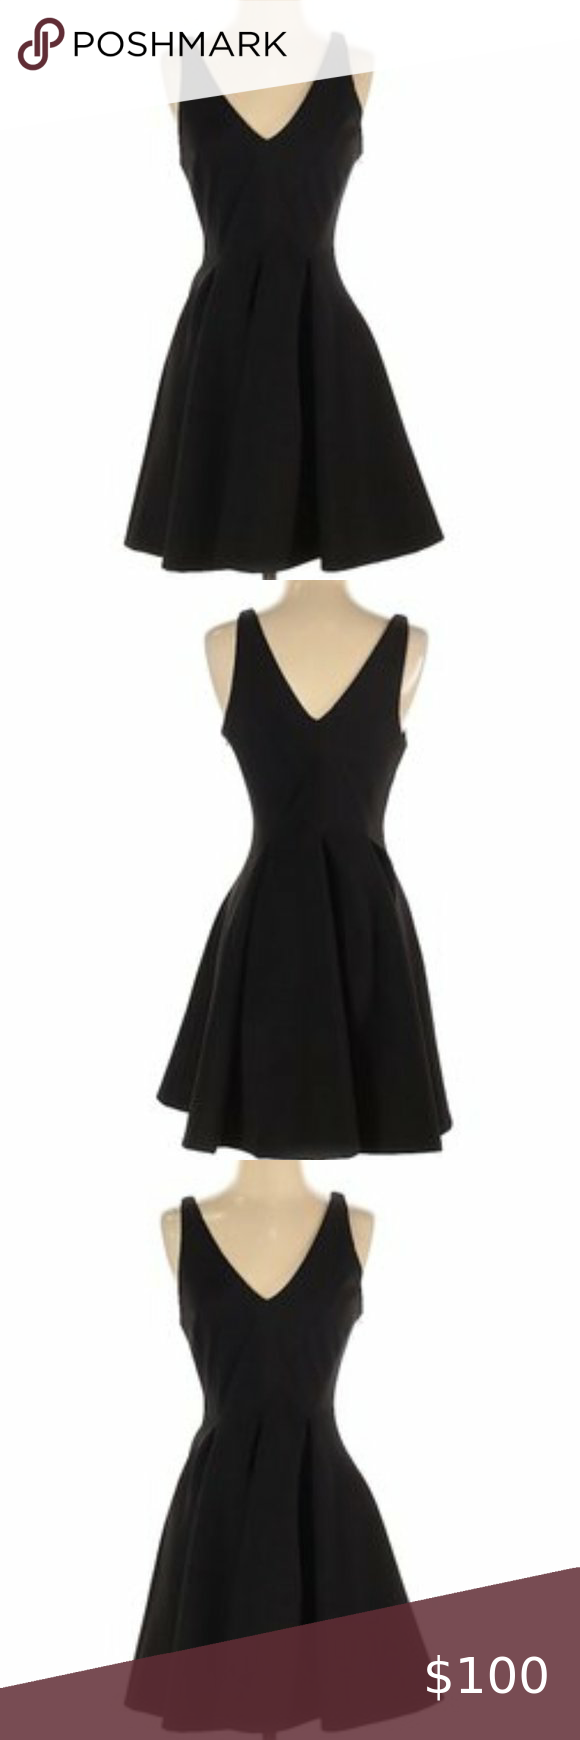 Jay Godfrey Fit And Flare Little Black Dress Little Black Dress Black Dress Dresses